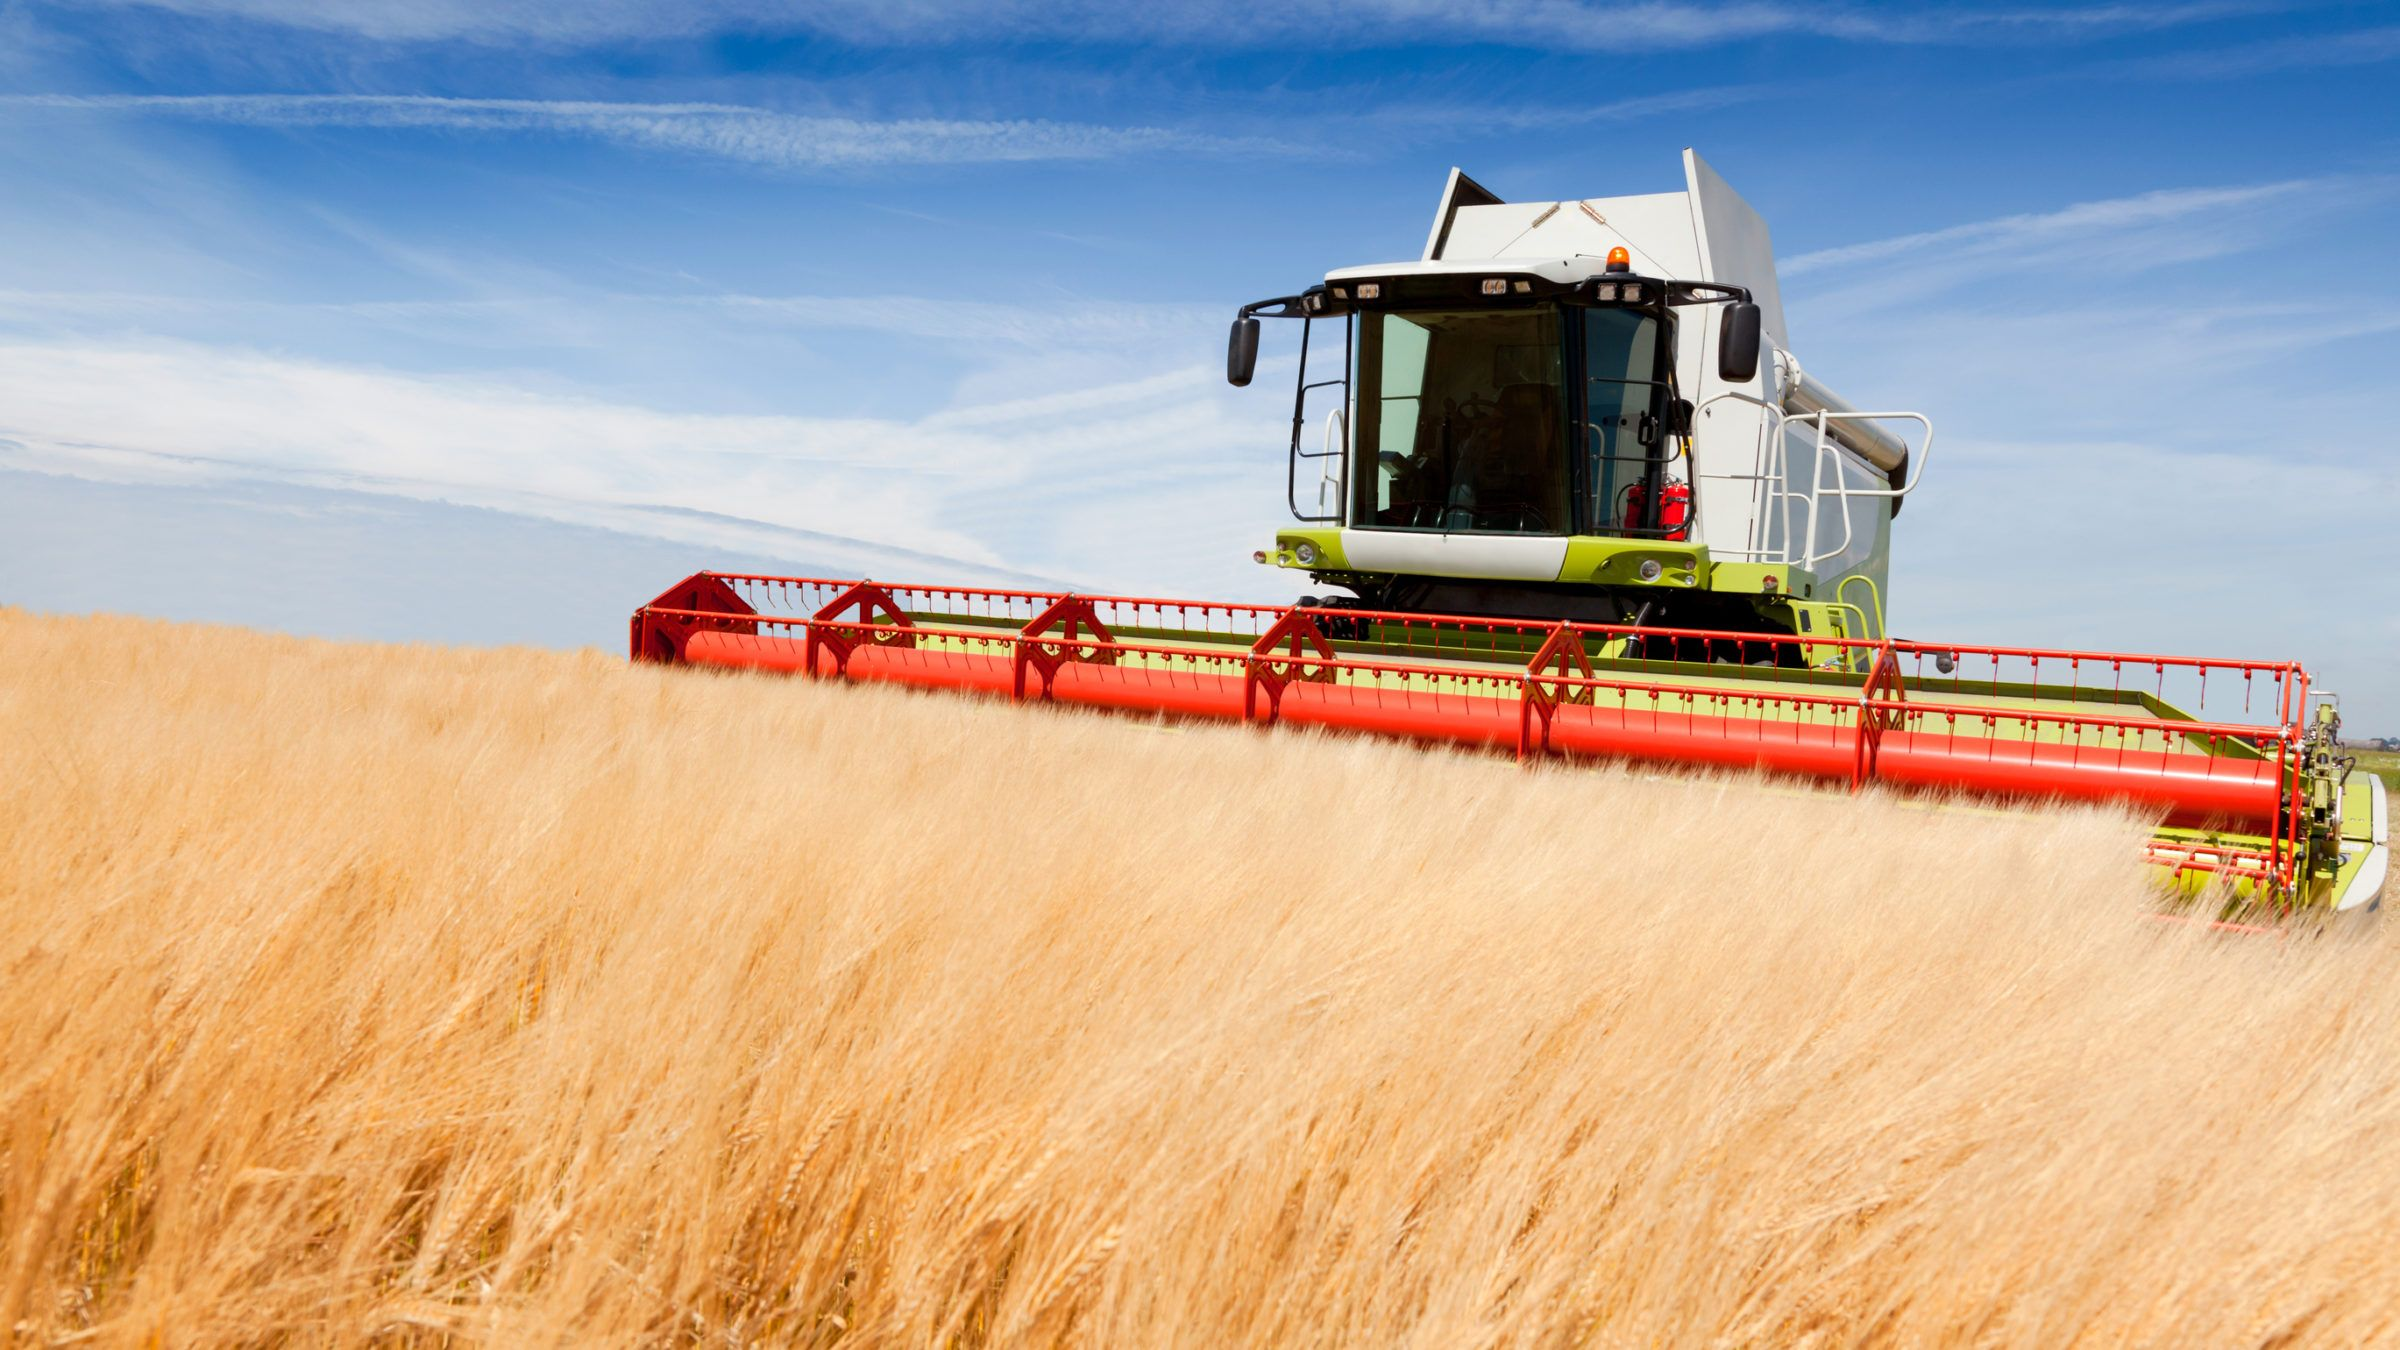 It's Possible To Cut Cropland Use in Half and Produce the Same Amount of Food, Says New Study